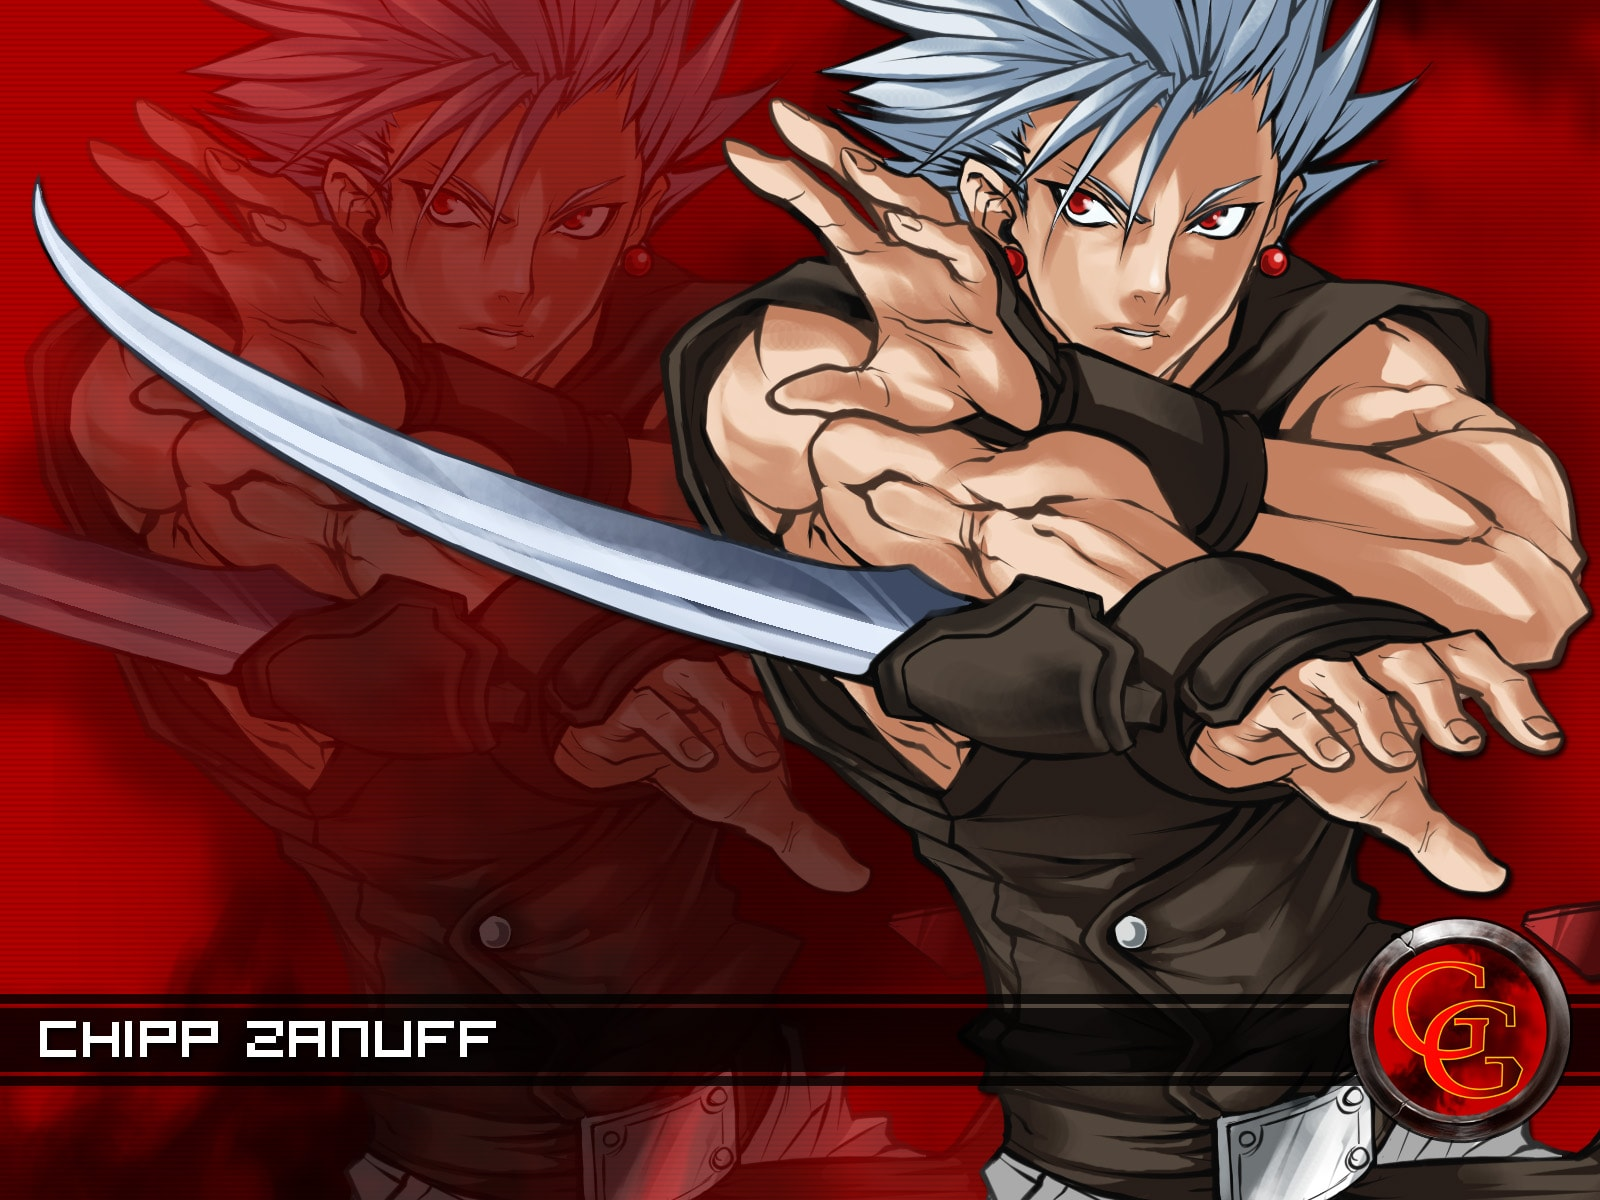 Guilty Gear: Chipp Zanuff widescreen wallpapers